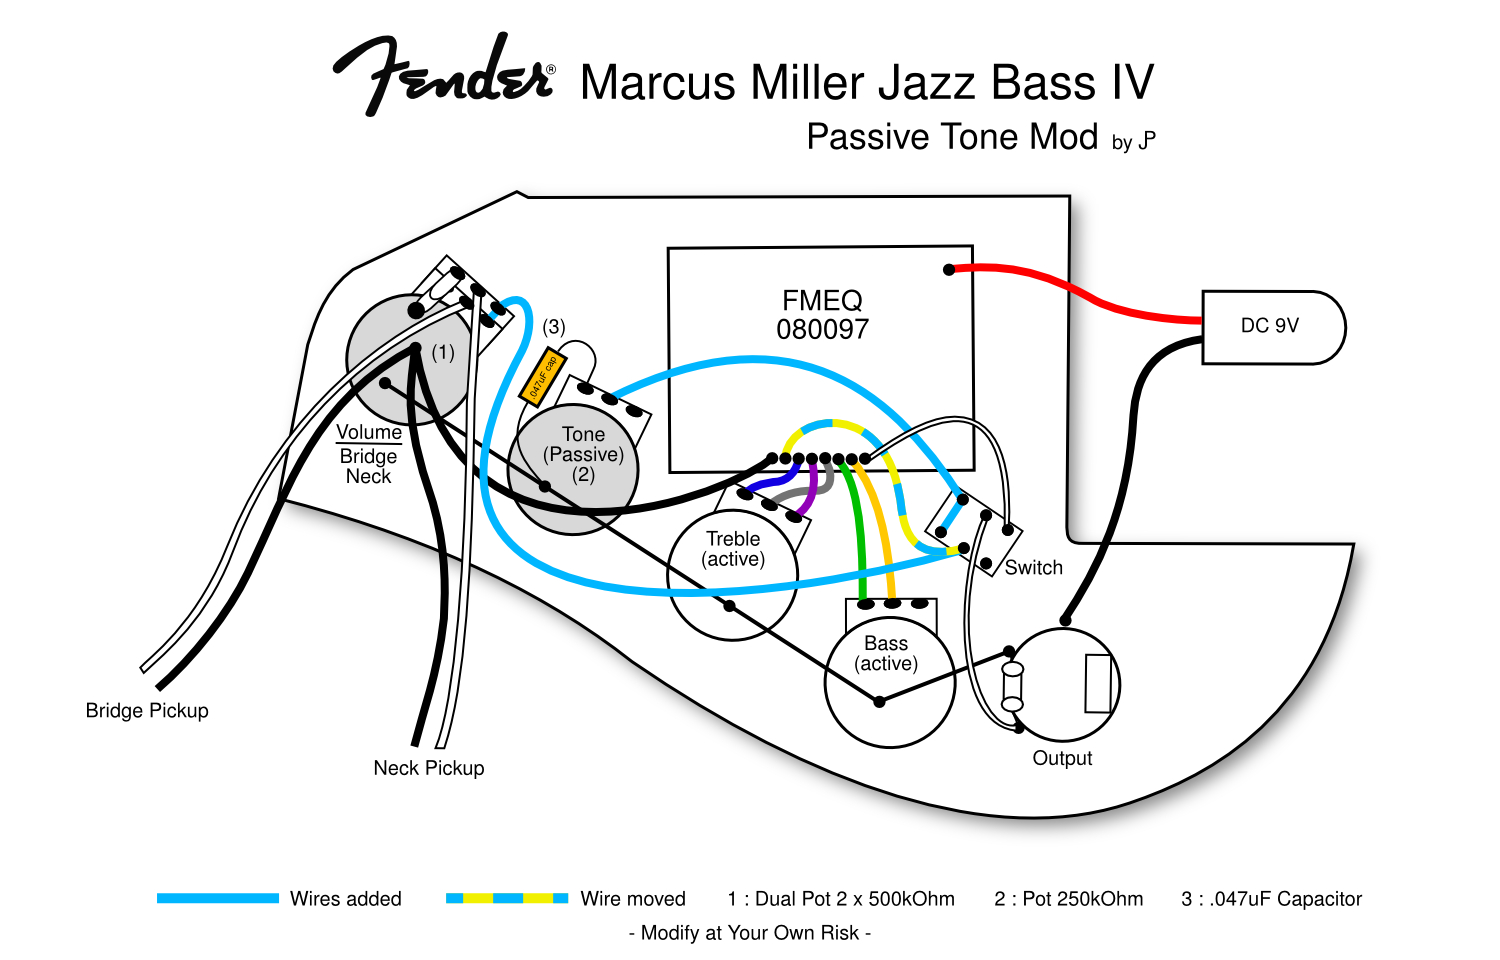 Fender Marcus Miller Jazz Bass Wiring Diagram | Wiring Diagram - Fender Jazz Bass Wiring Diagram